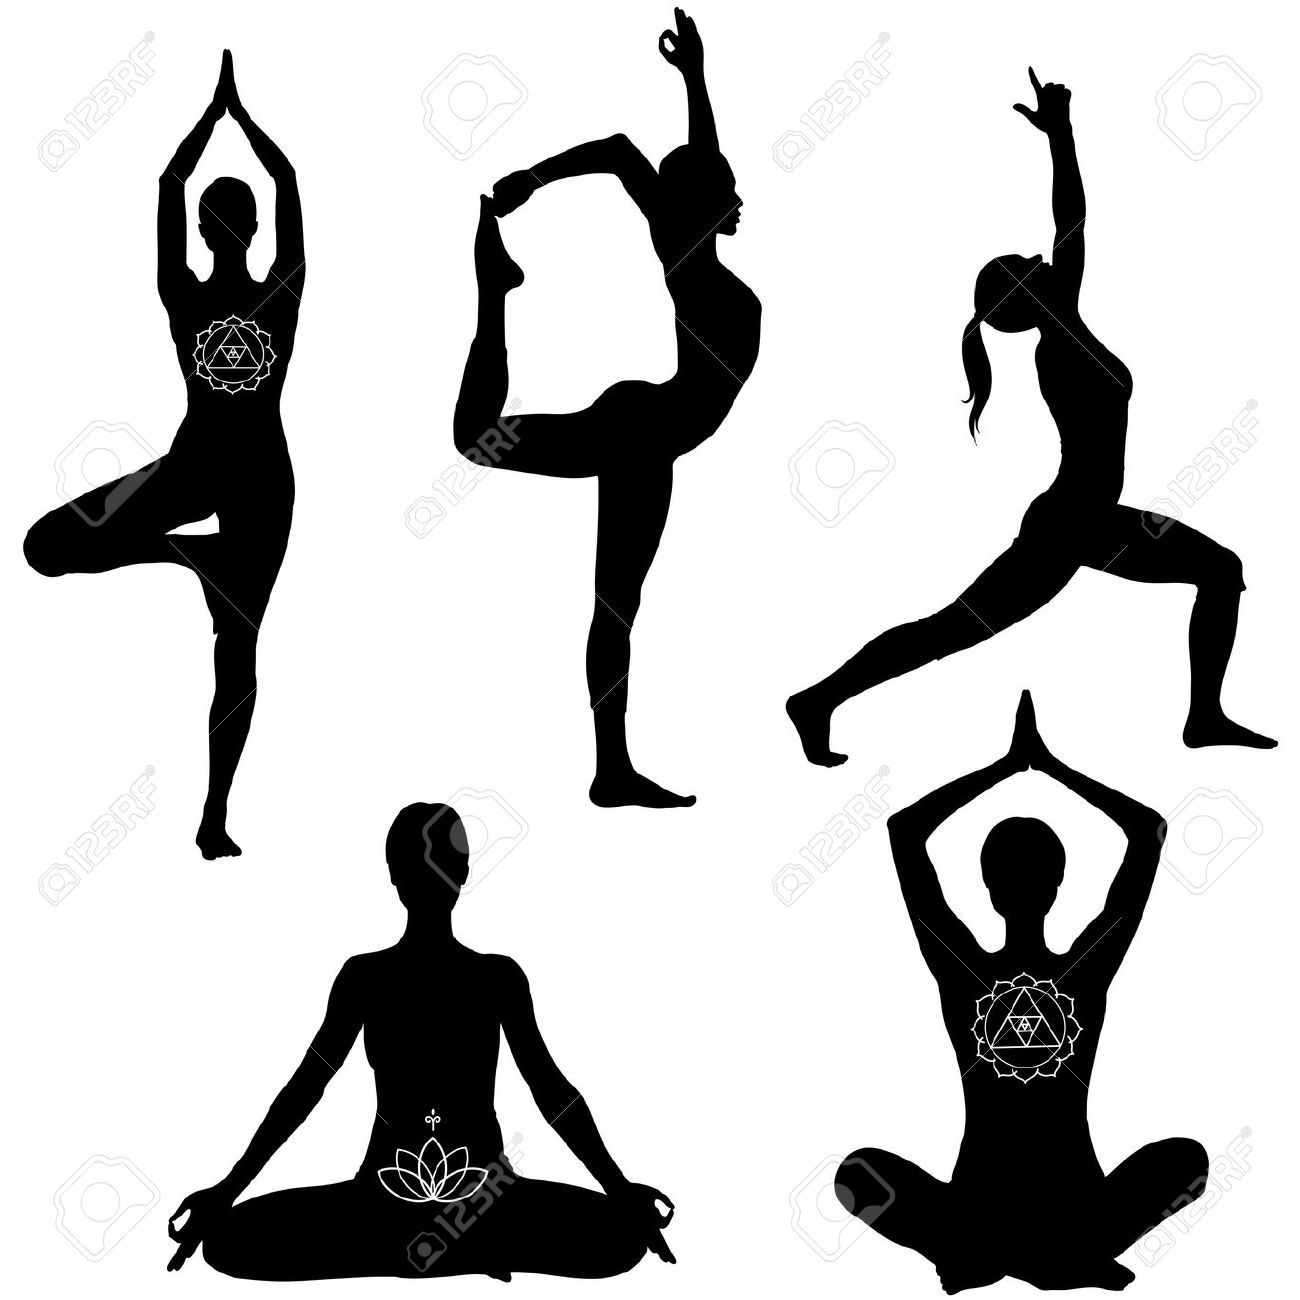 10988094 Yoga Poses Lotus Lord Of The Dance Warrior I And Tree Pose Black Icon Set Stock Vector 1300x1300